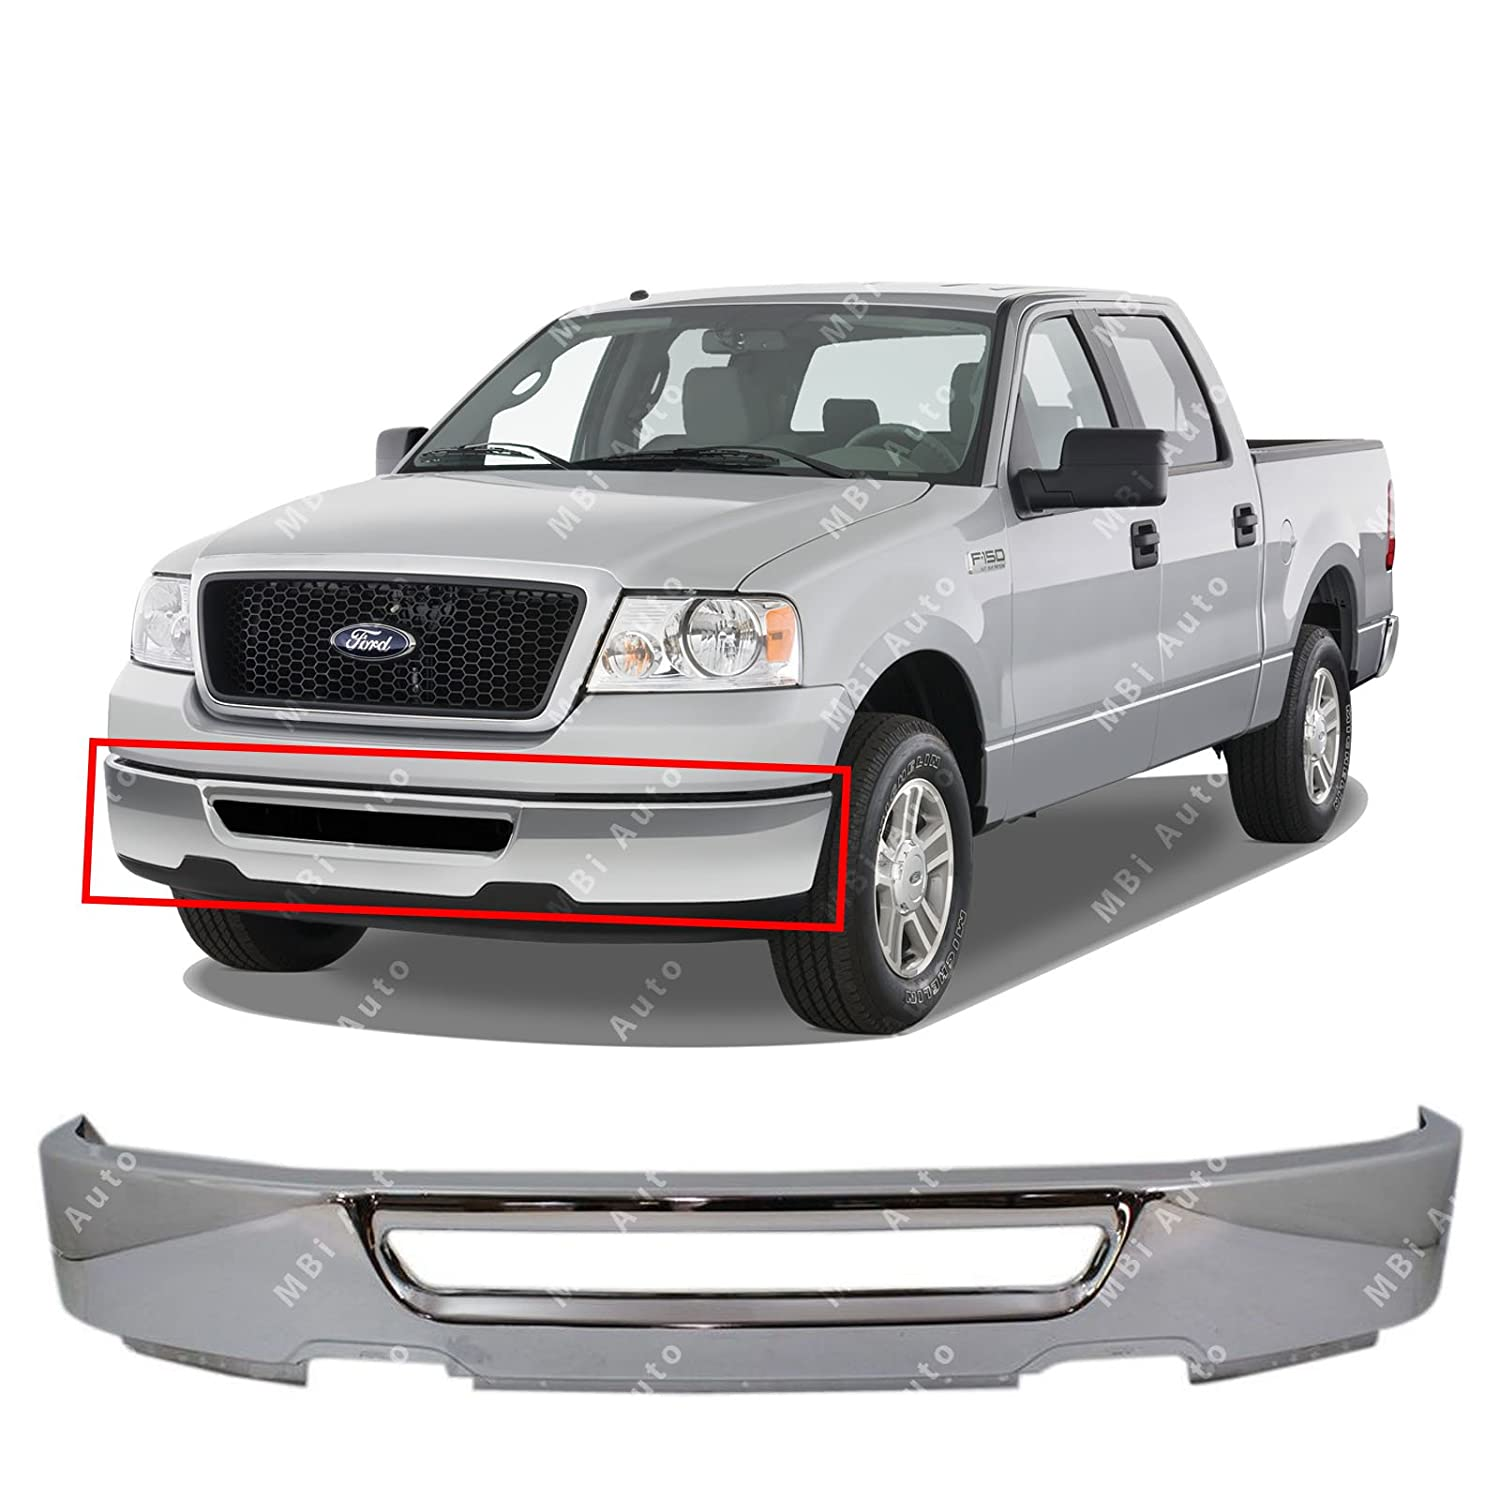 MBI AUTO - Chrome Steel, Front Bumper Face Bar Shell for 2006 2007 2008 Ford F150 W/out Fog Pickup 06-08, FO1002400